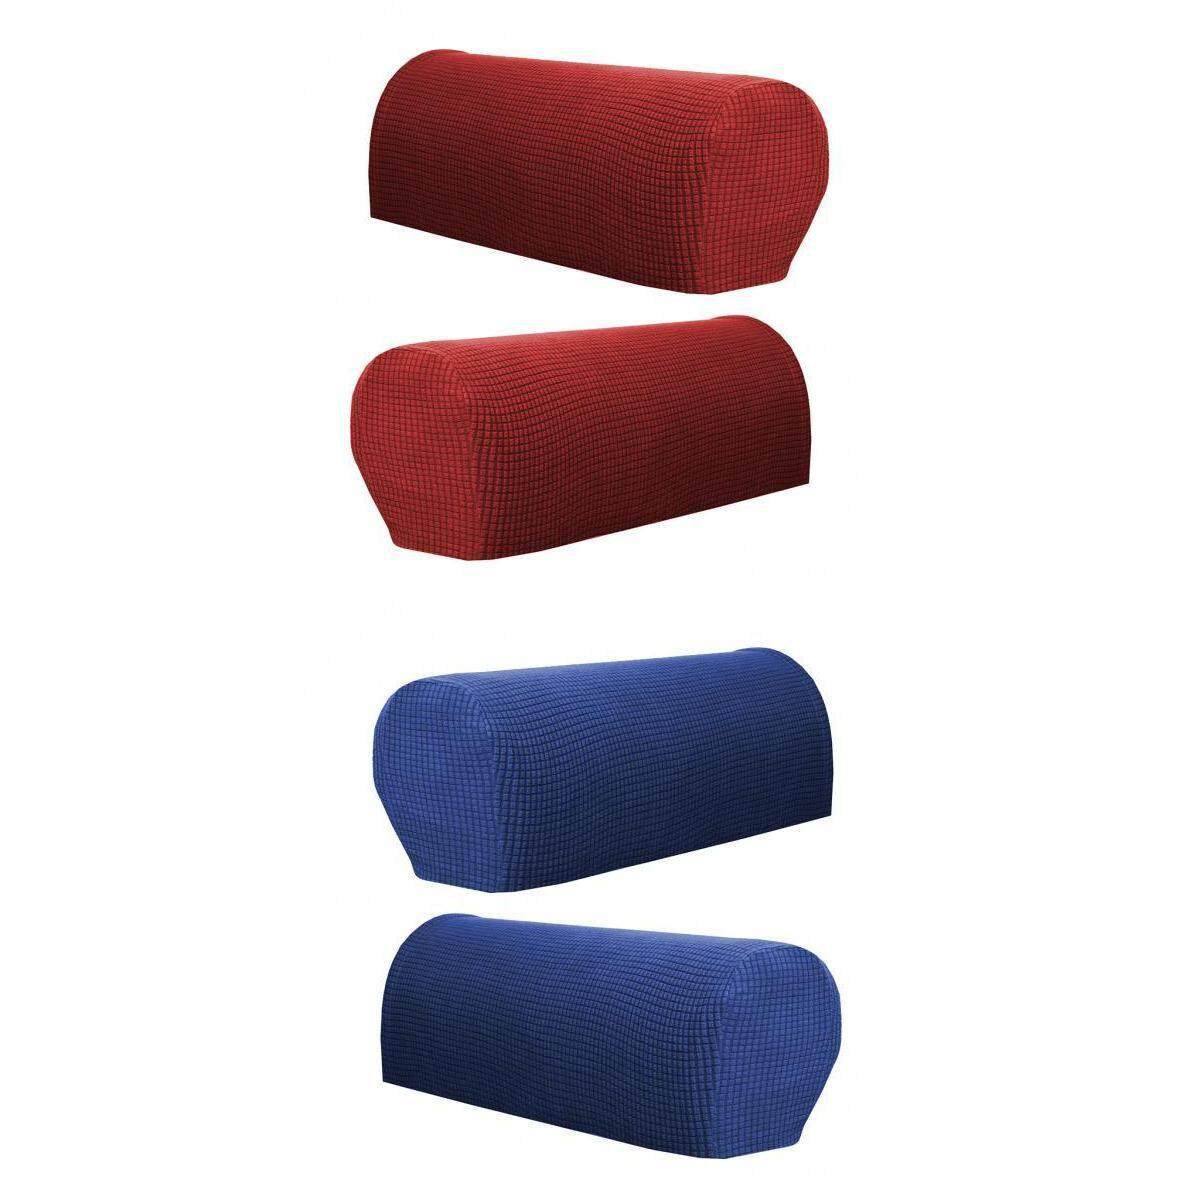 Fityle 2 Pair (Red &Blue) Sofa Arm Protectors Armrest Covers Stretch Anti-slip